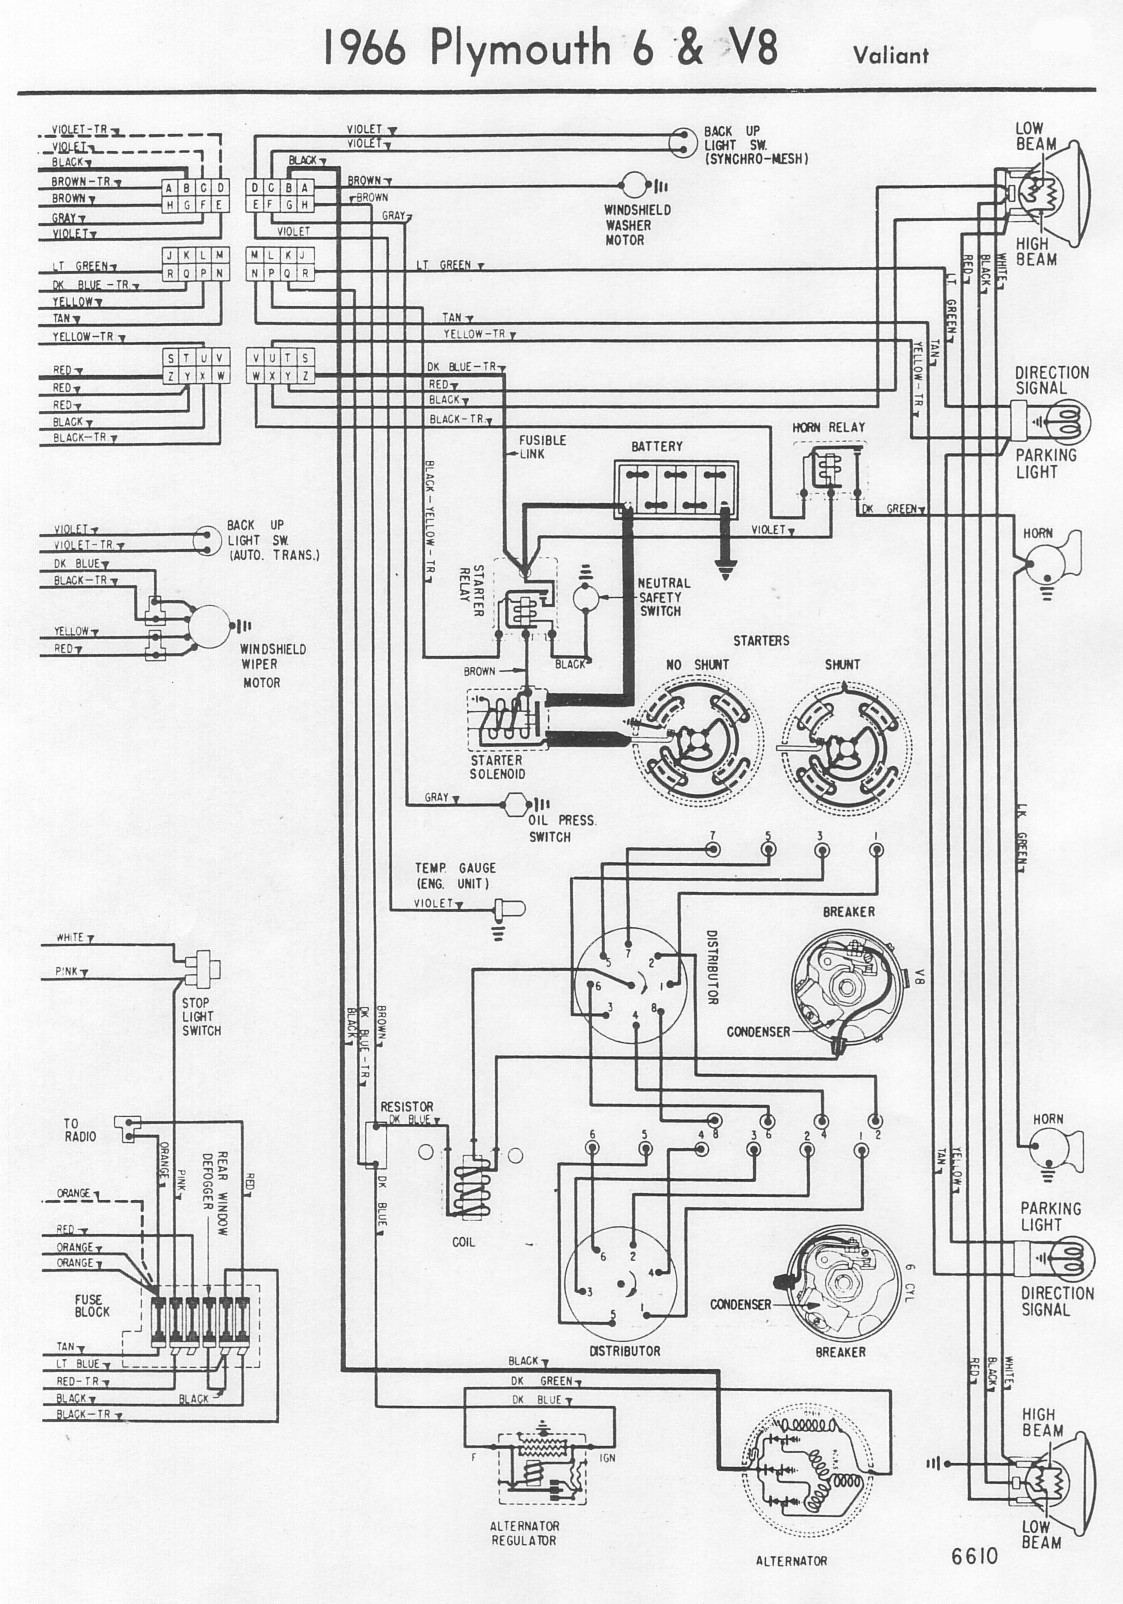 Wiring Diagrams on mopar junk yards, mopar crate engines, mopar pin up, mopar graveyard, mopar no car, mopar barn finds, mopar big block, mopar 318 engine, mopar hei wiring, mopar start system diagram, mopar street rods, dodge truck electrical diagrams, mopar super bee, mopar super stock, mopar starter relay, mopar resto mods, mopar desktop theme, smart car diagrams, mopar hemi engine, chrysler fuel diagrams,